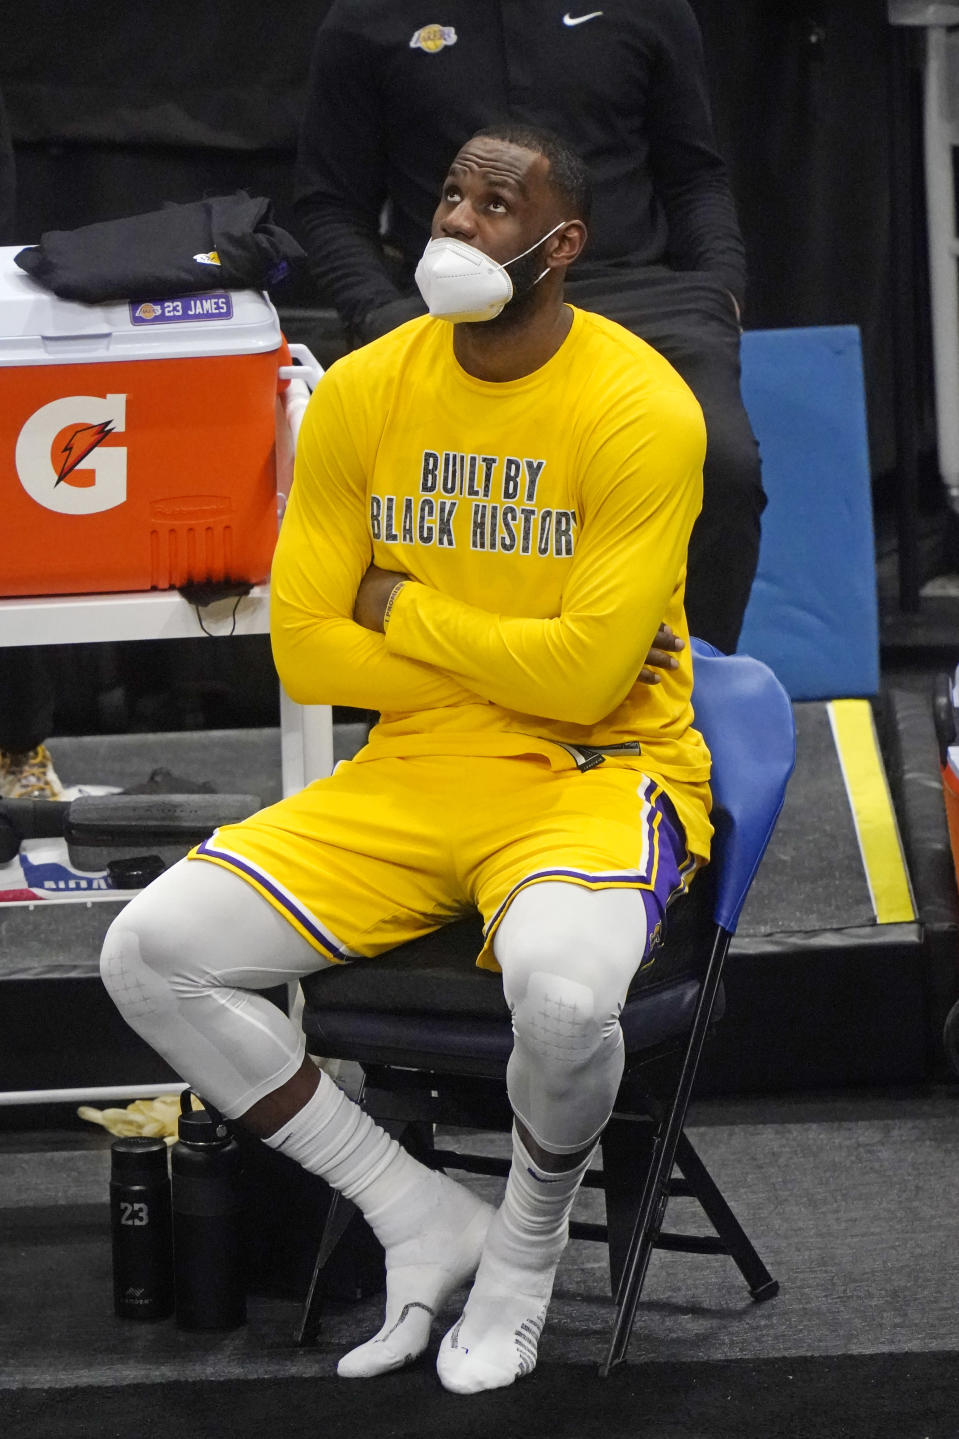 Los Angeles Lakers forward LeBron James looks at the scoreboard while sitting on the bench during the second half of the team's NBA basketball game against the Utah Jazz on Wednesday, Feb. 24, 2021, in Salt Lake City. (AP Photo/Rick Bowmer)